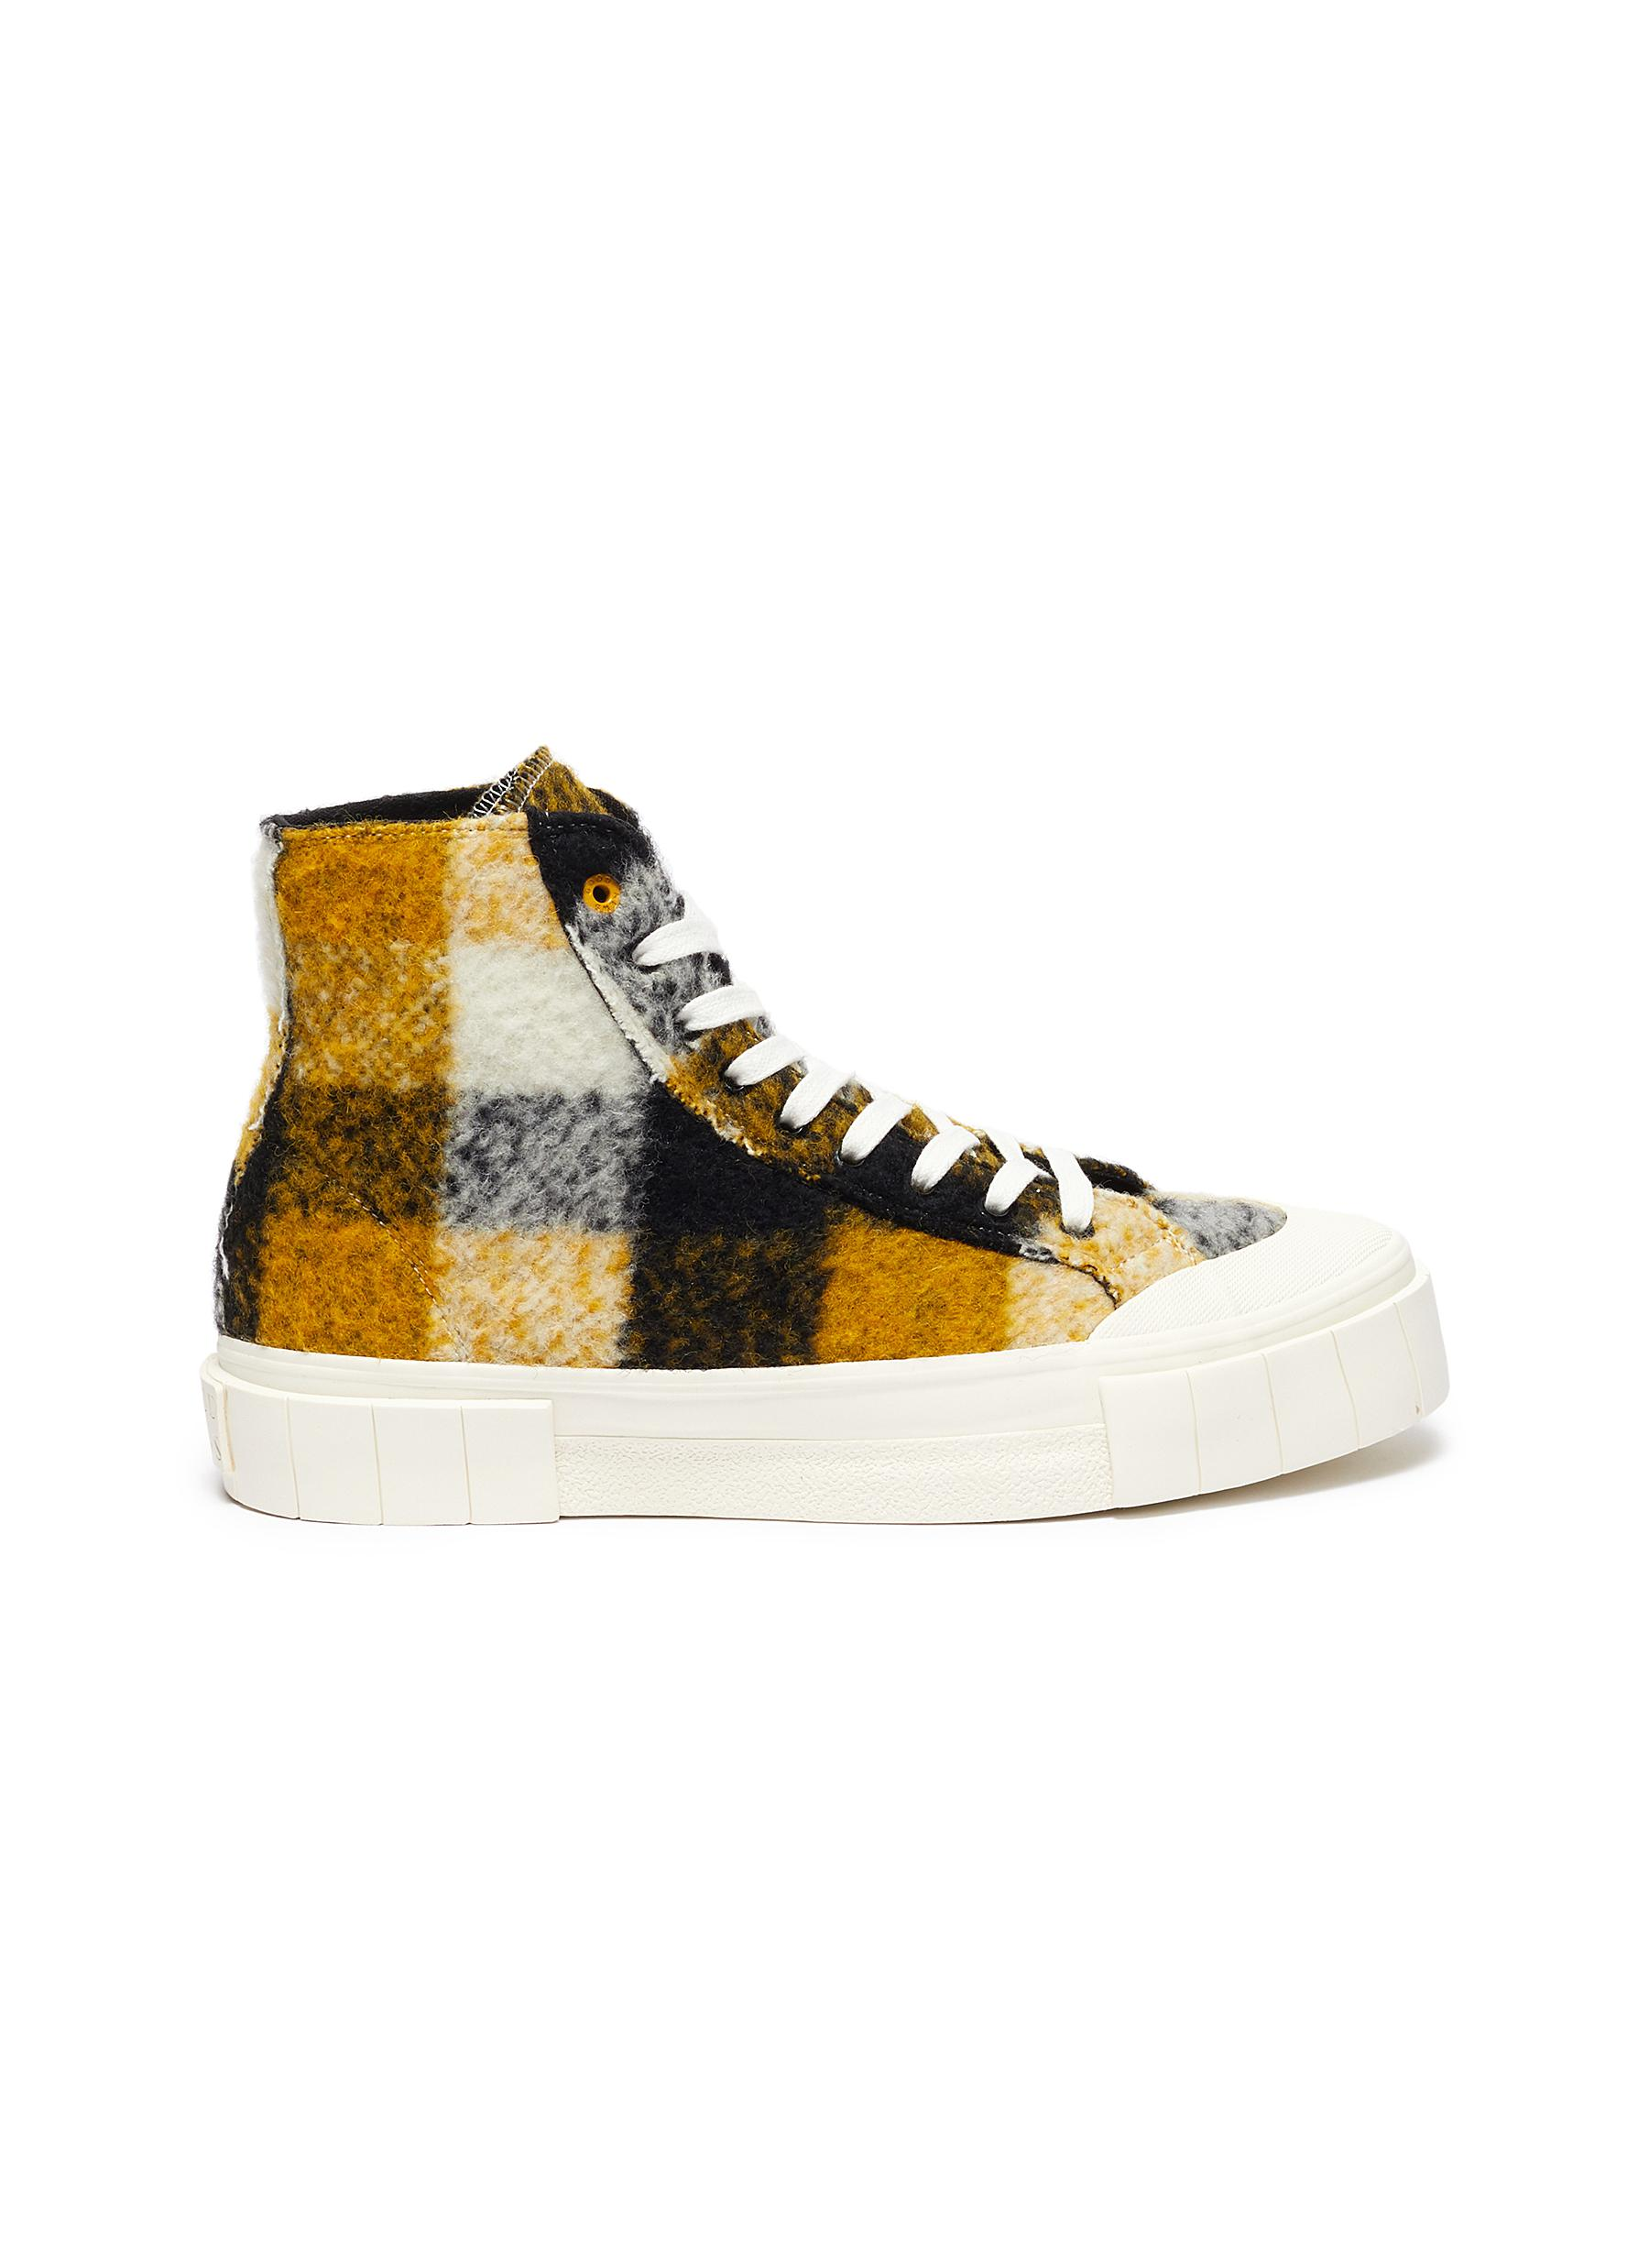 Softball 2 checkered wool high top sneakers by Good News